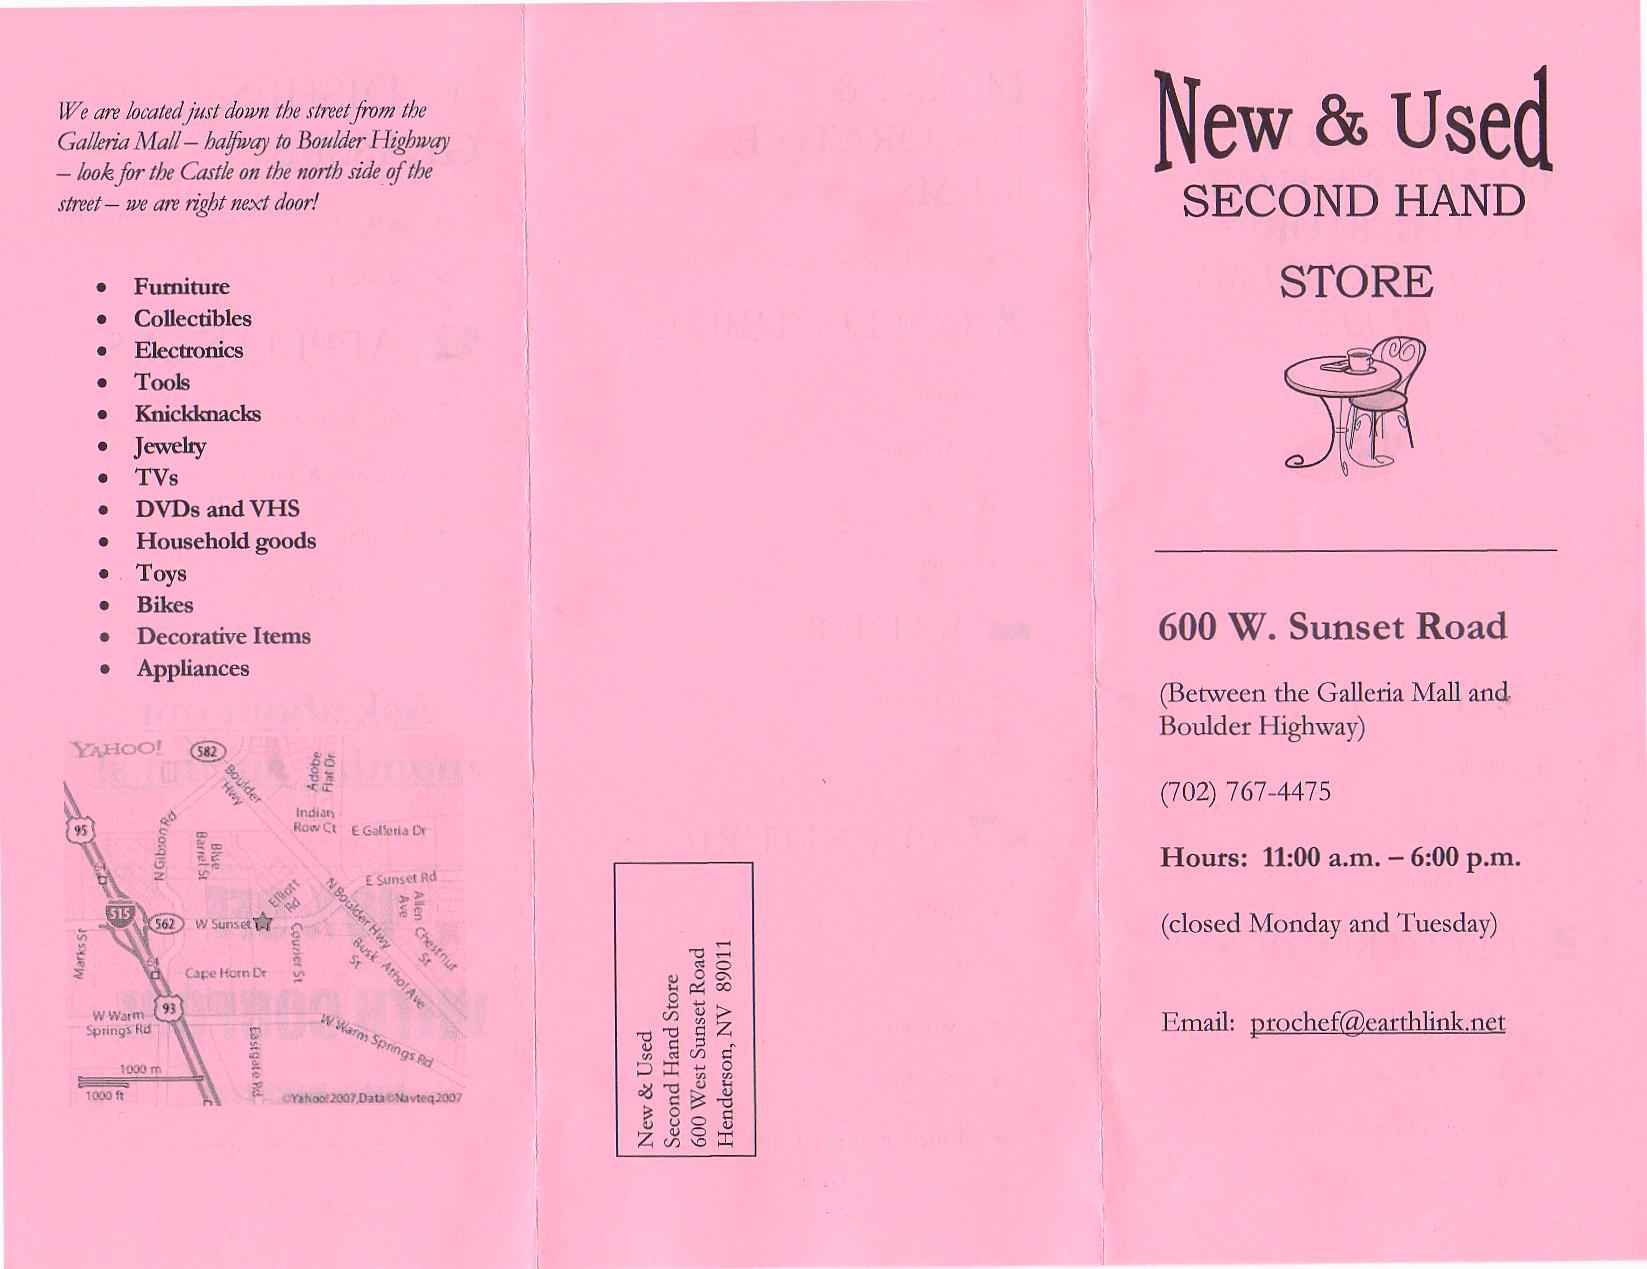 Thrift Store Flyers Sample Heartimpulsarco - Sales invoice template word online thrift store clothes